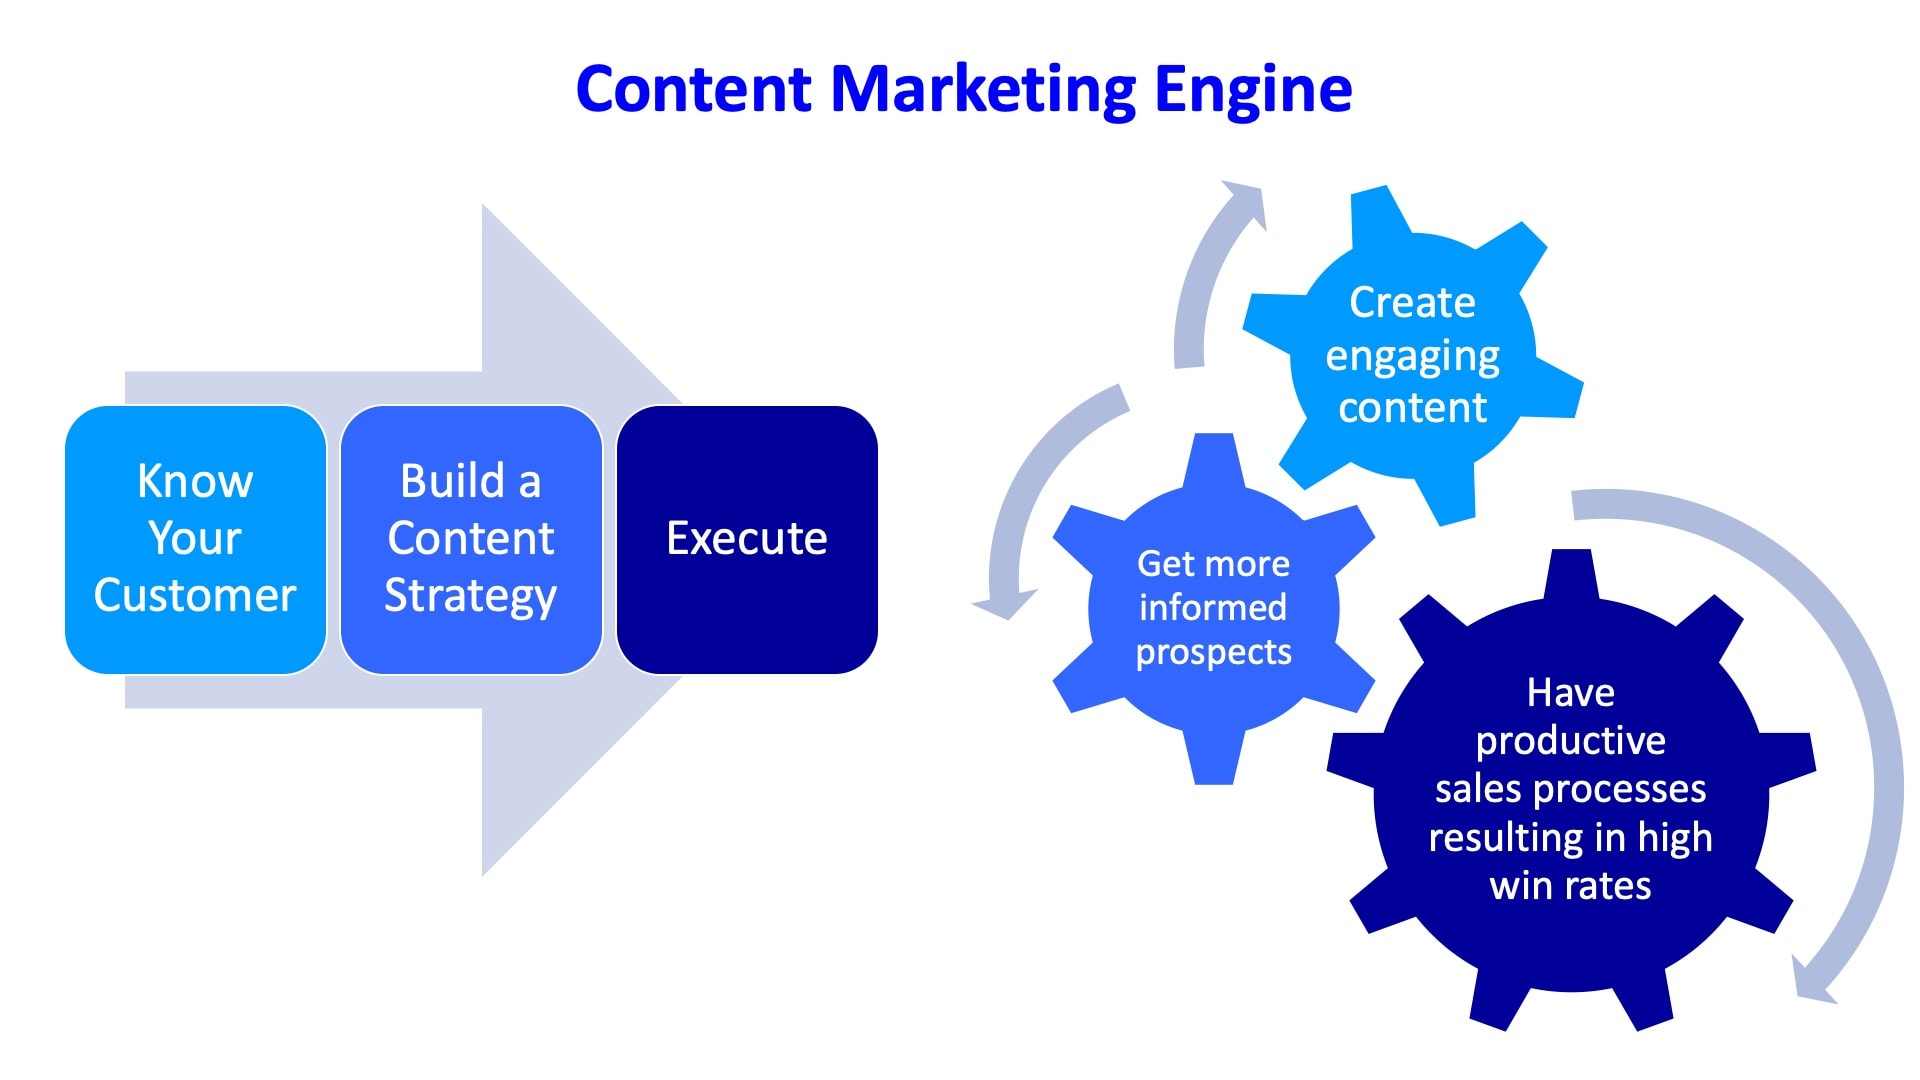 content marketing engine for sales and marketing